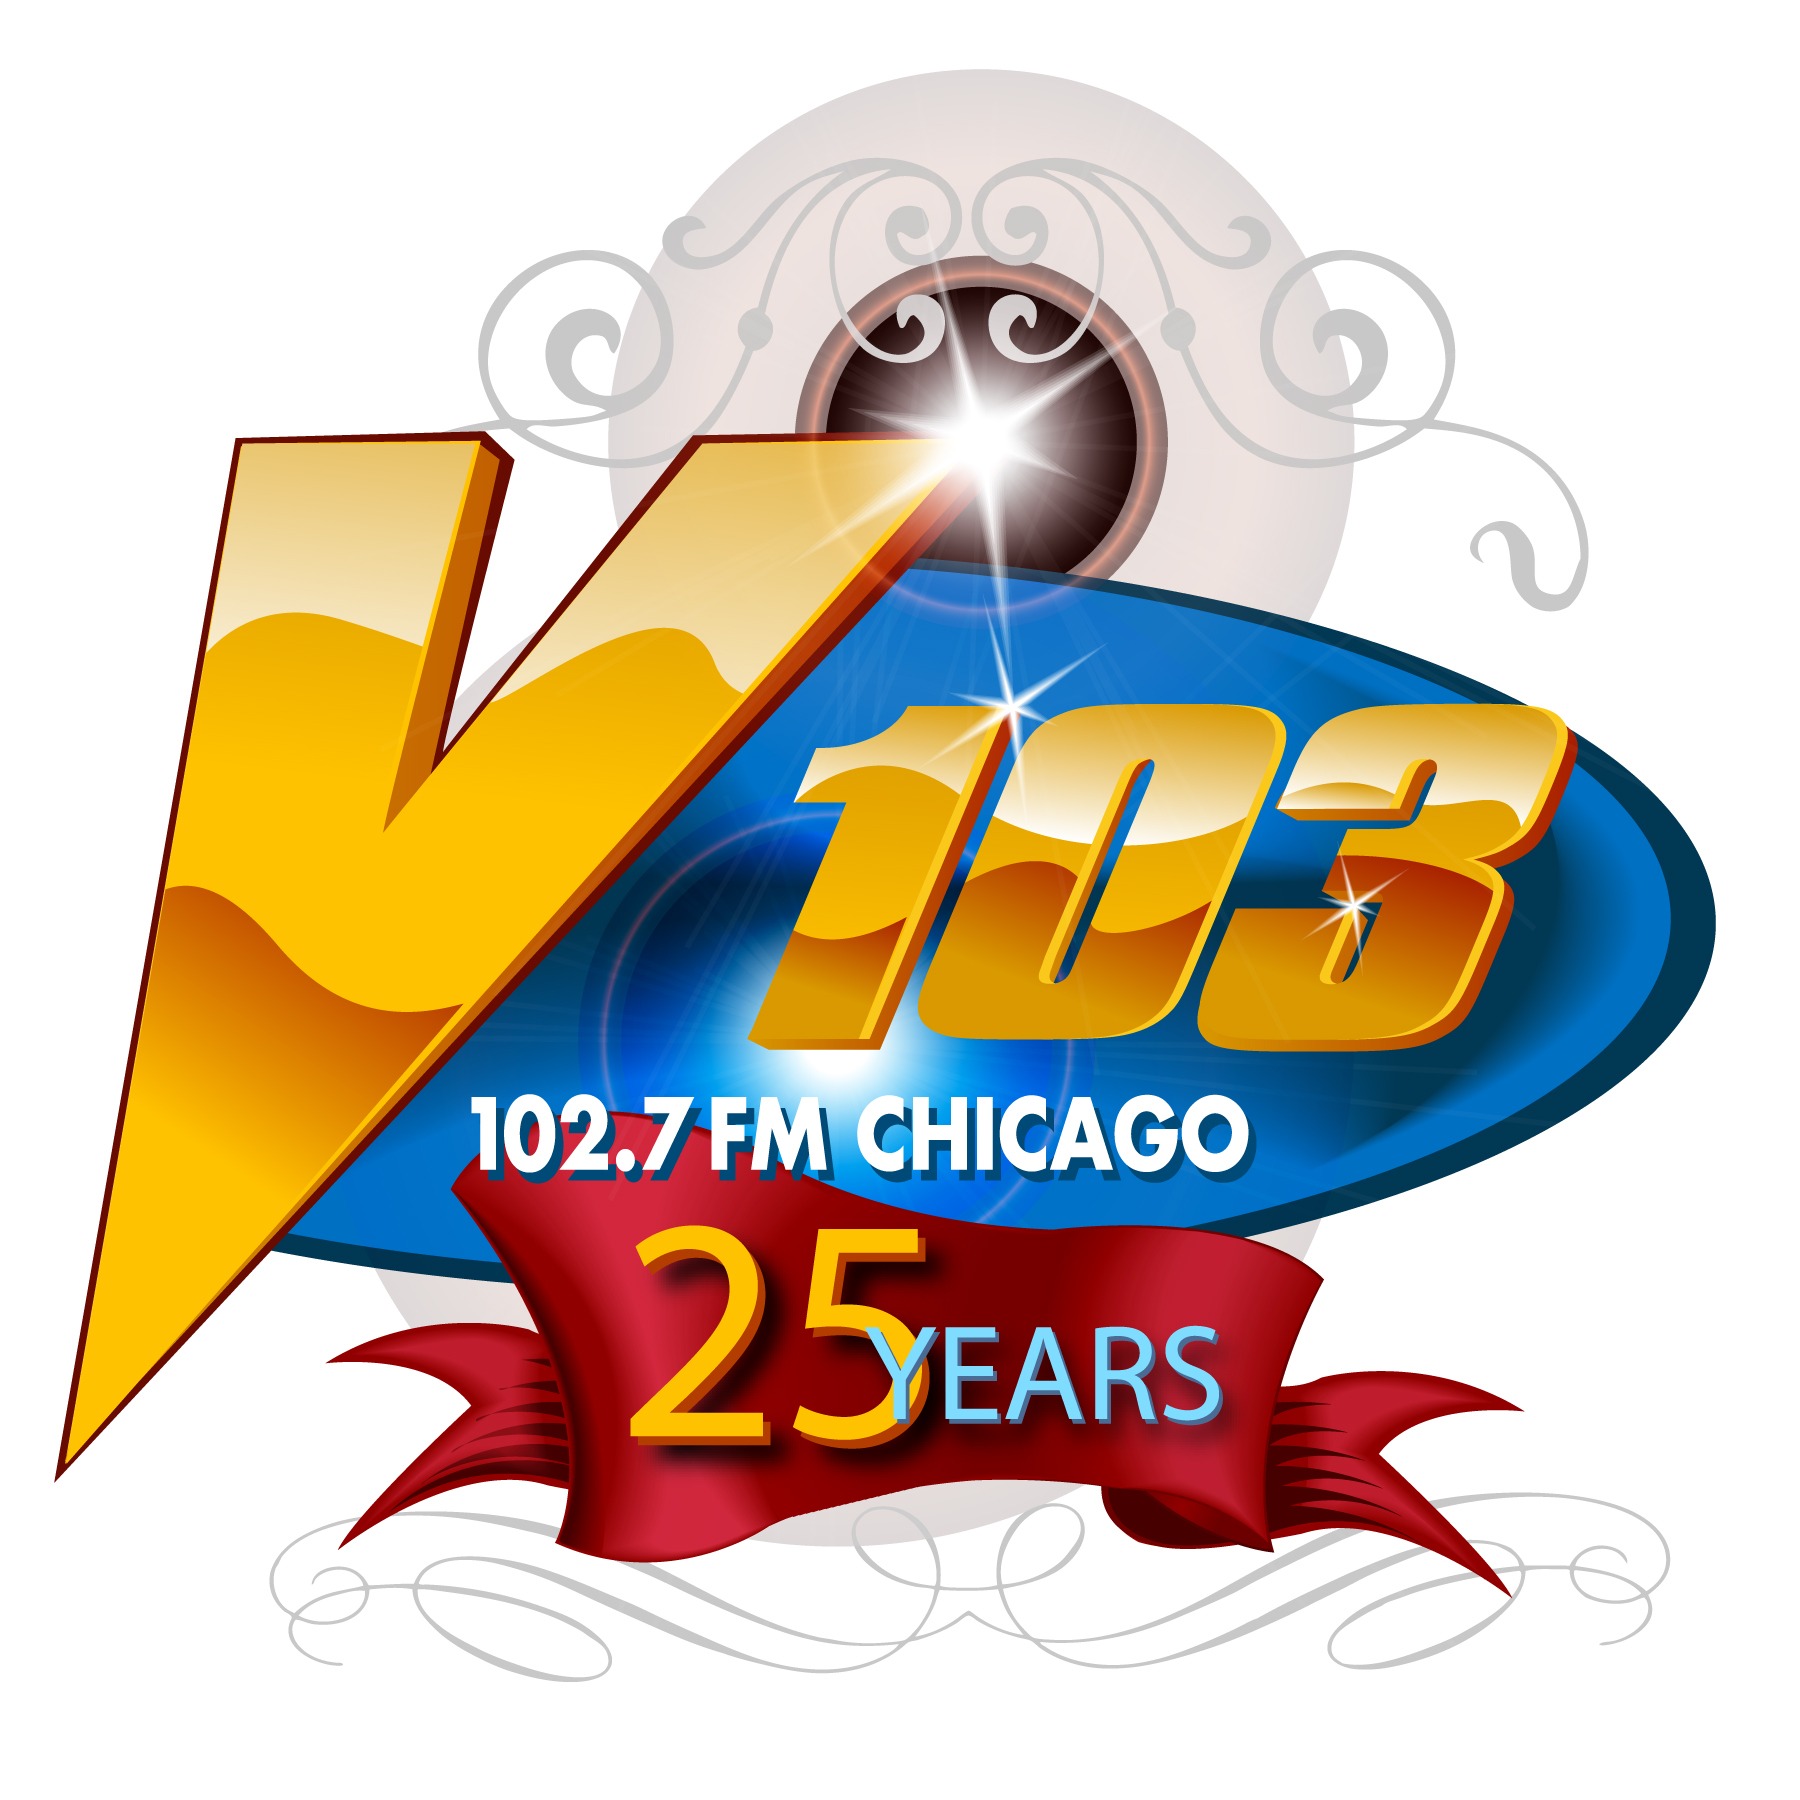 V103 25th Anniversary logo